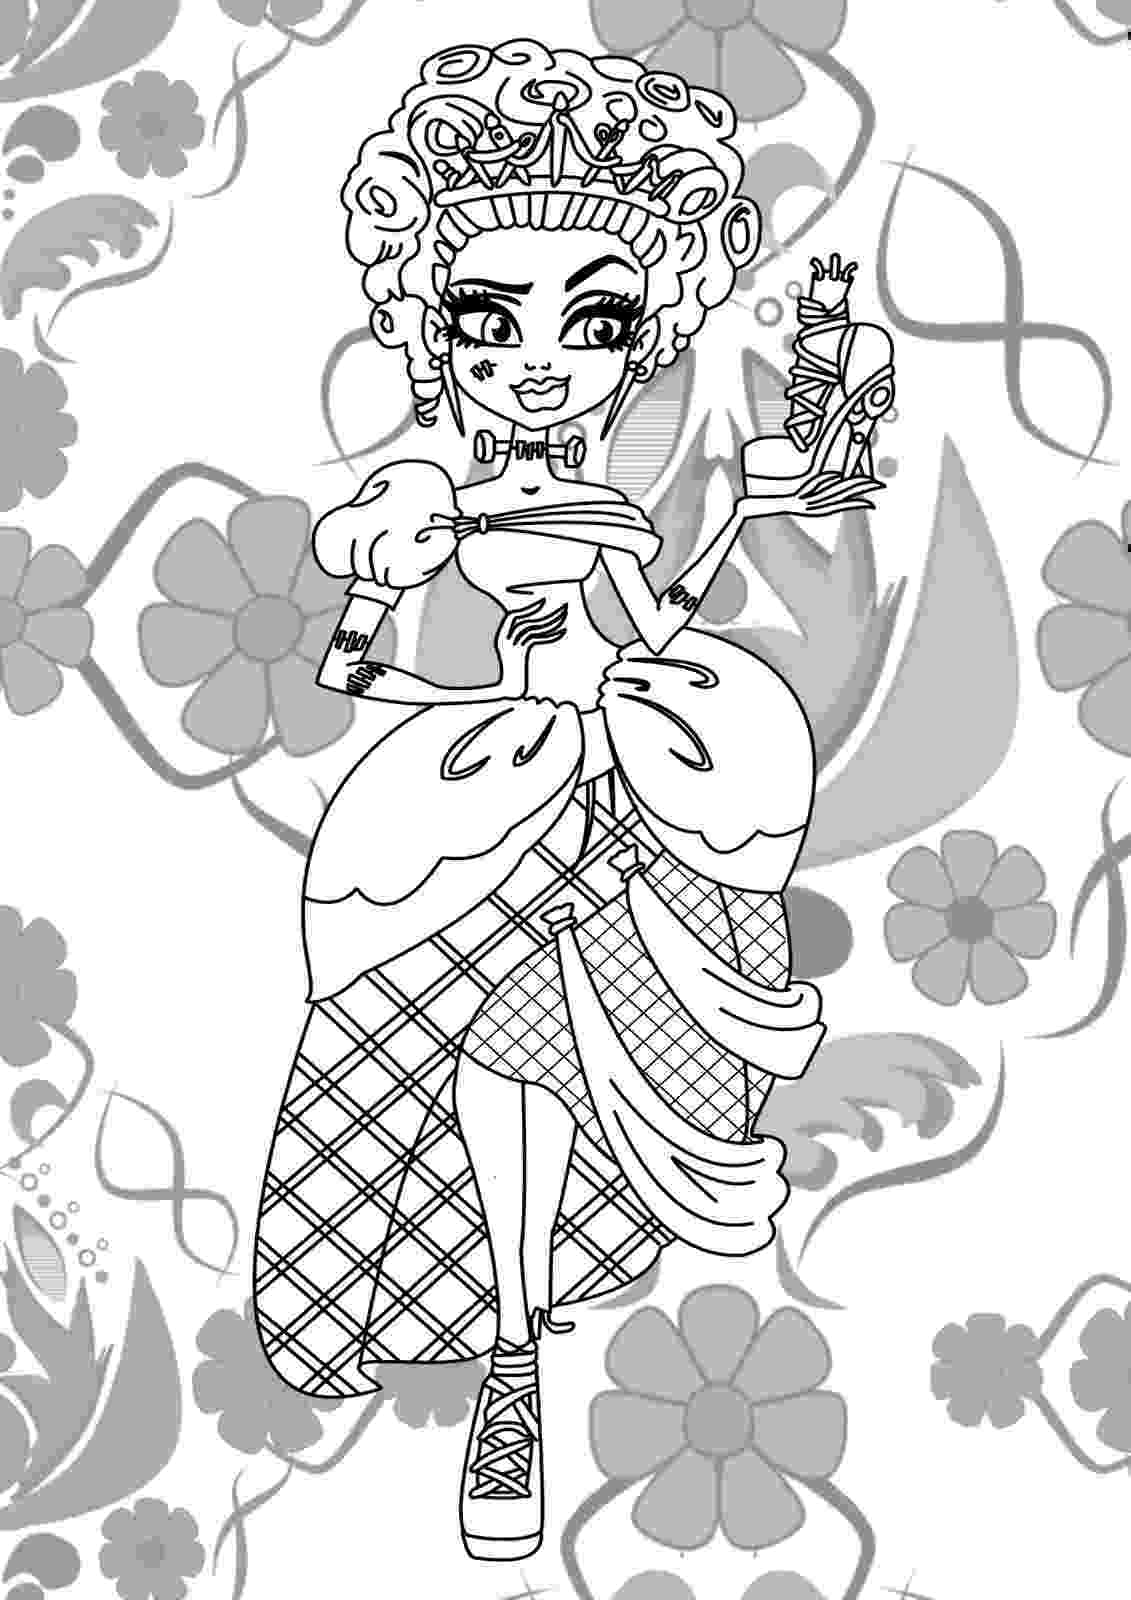 monster high printable coloring pages coloring pages monster high page 2 printable coloring high coloring monster printable pages